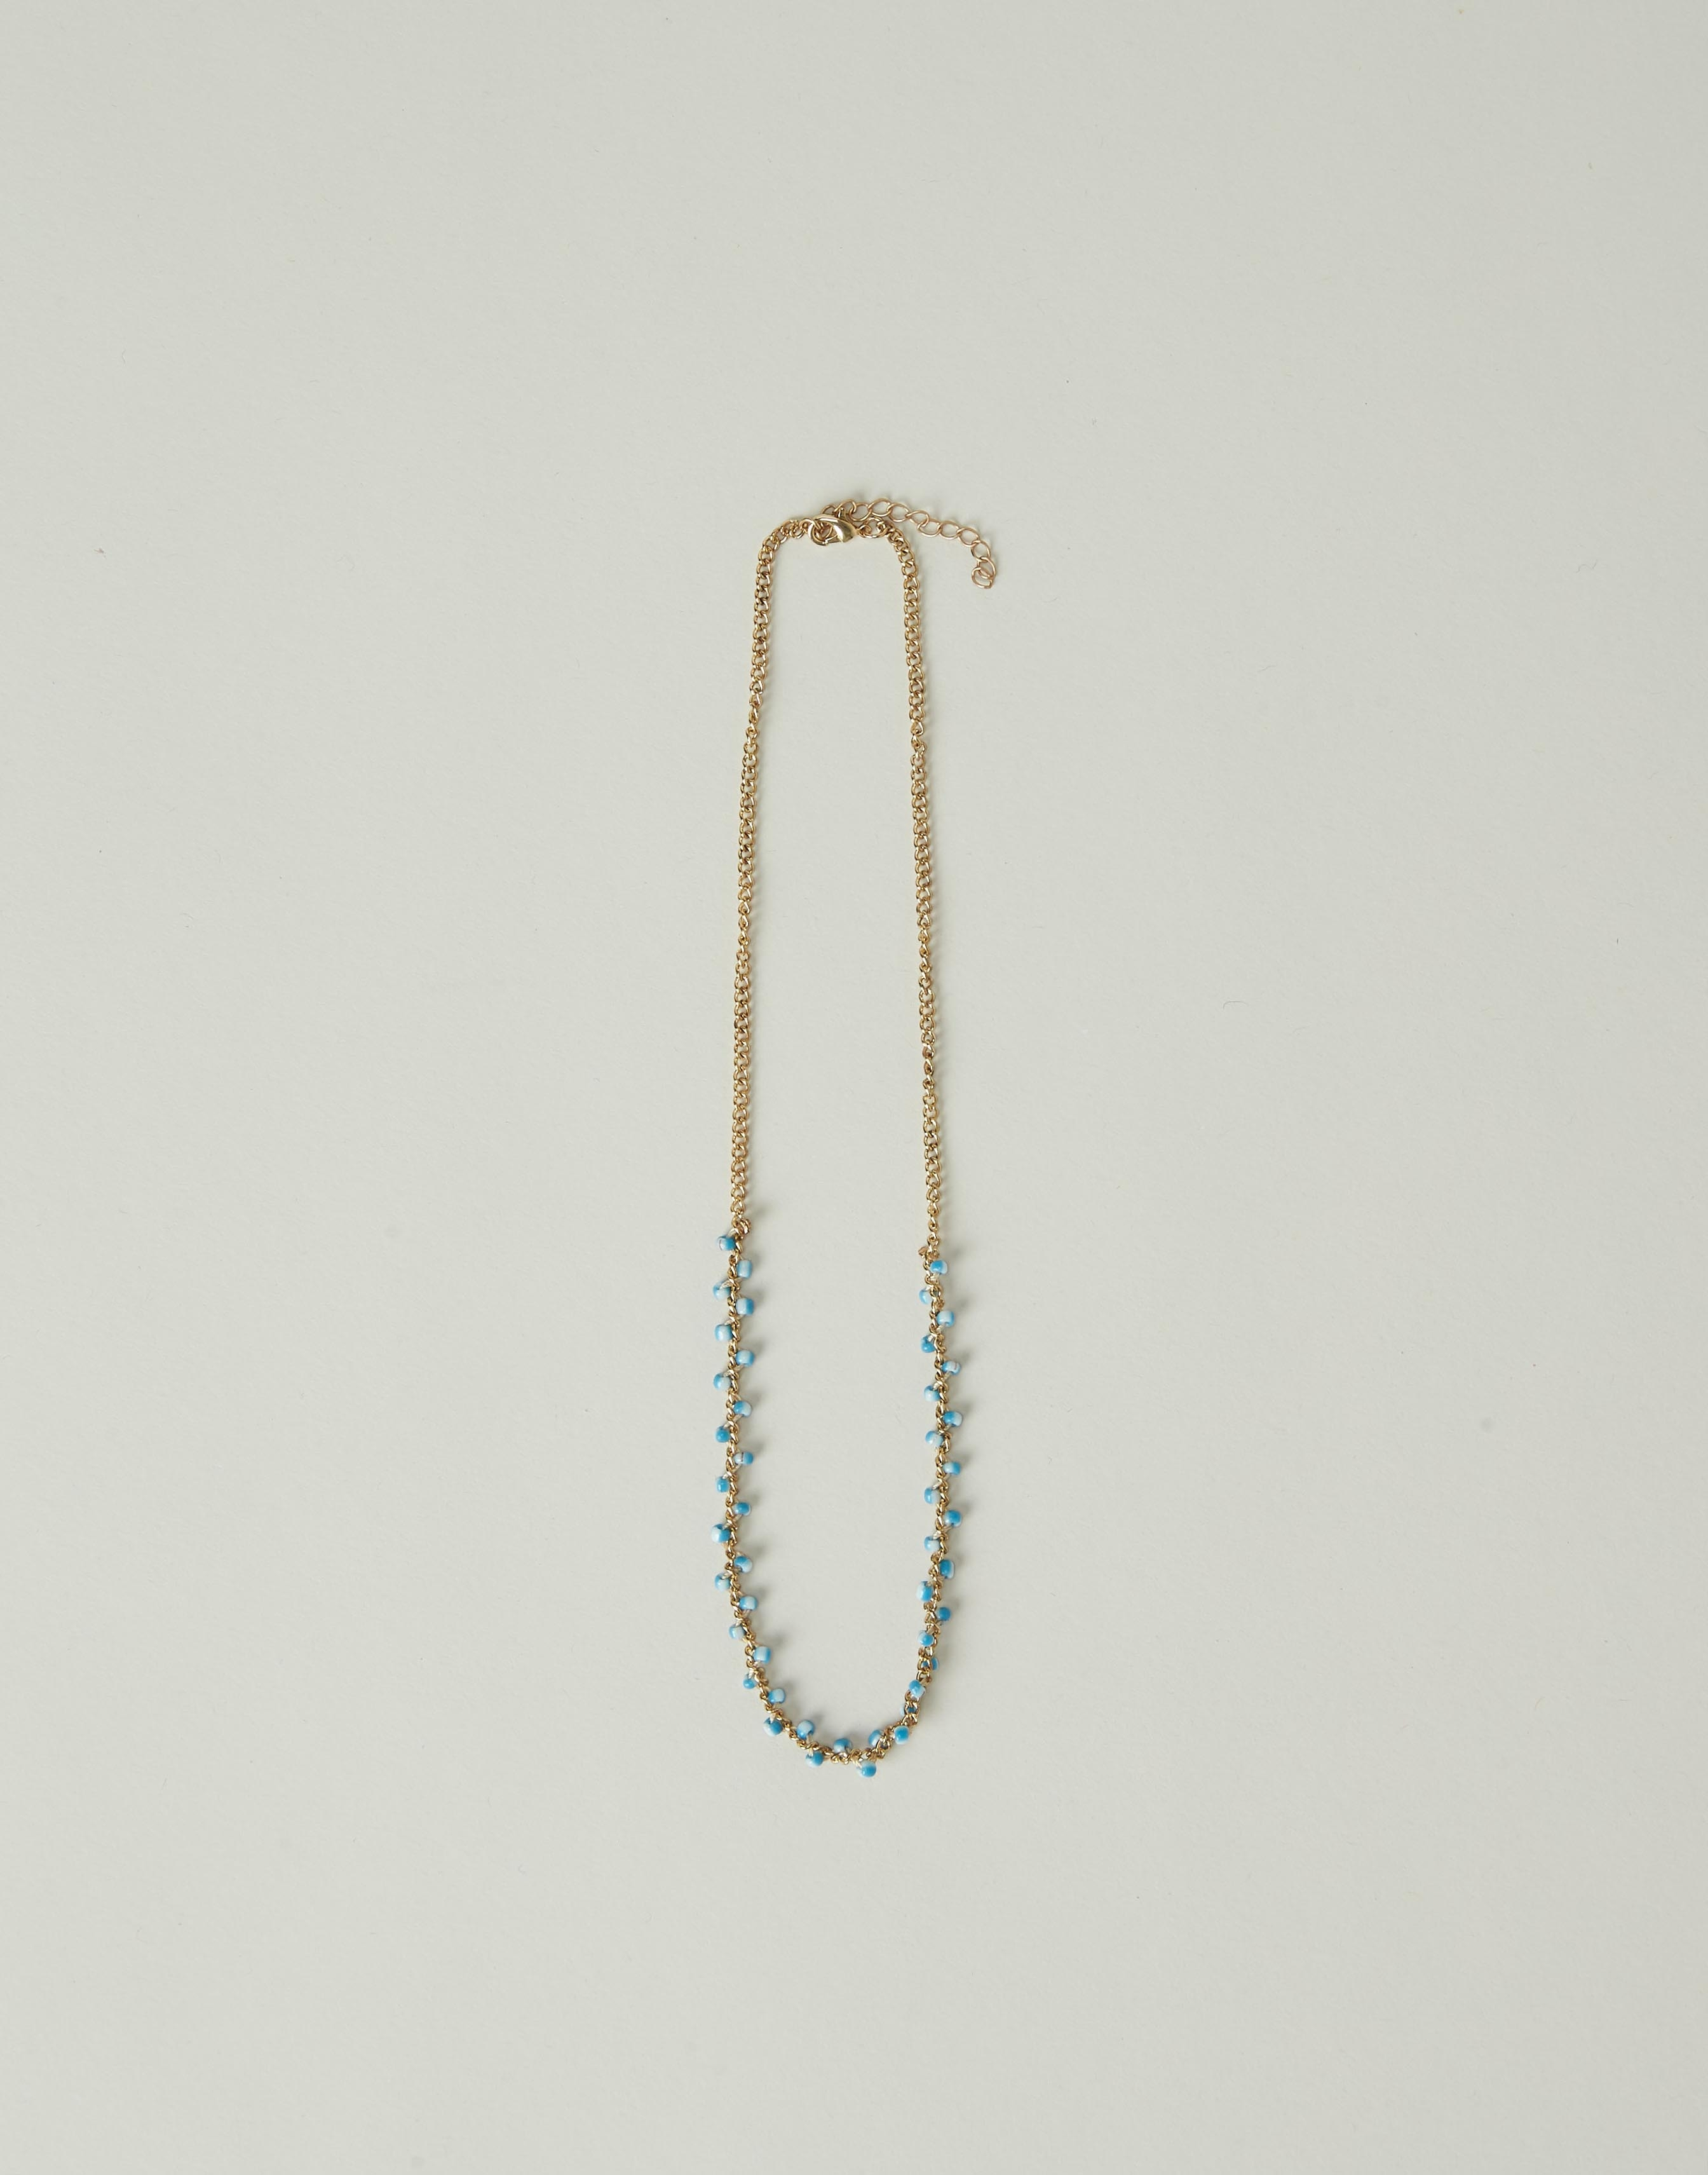 Chain necklace with bicolor beads